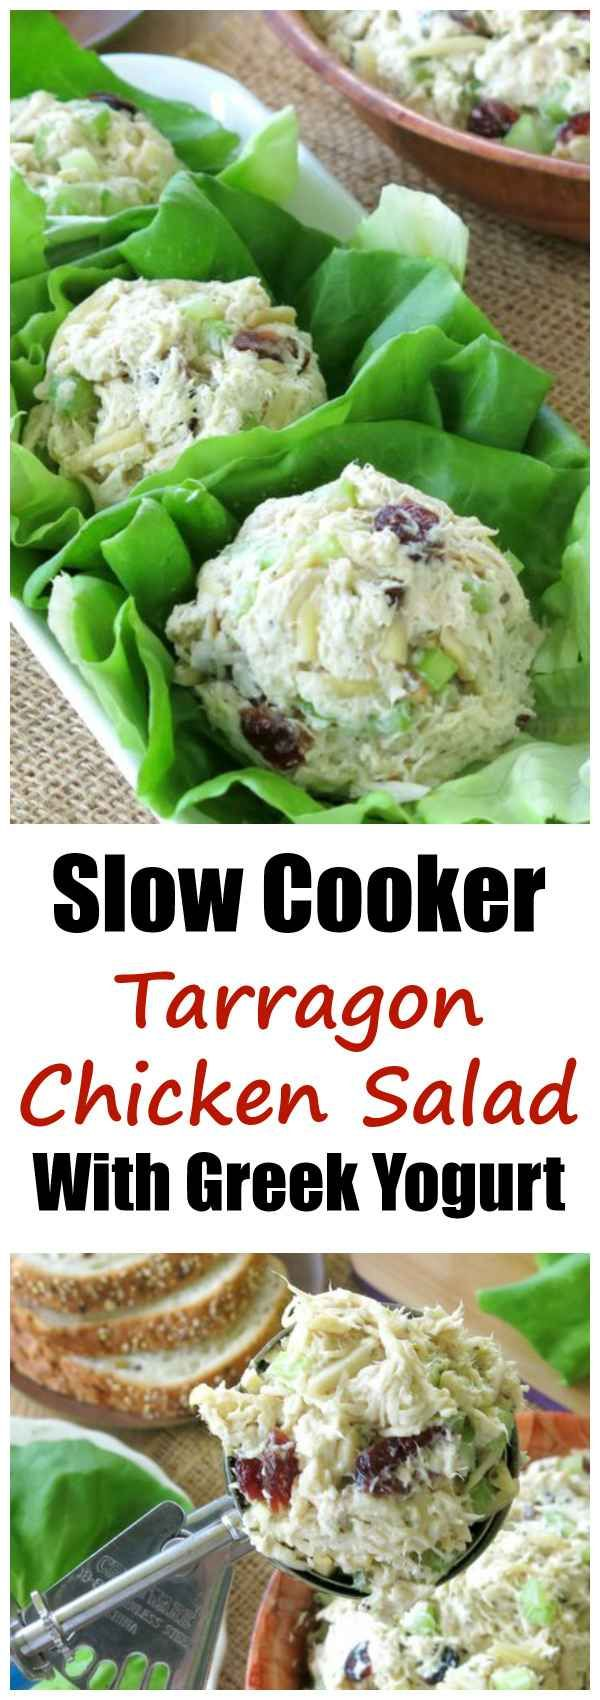 Slow Cooker Tarragon Chicken Salad Recipe with cram Cheese and Greek Yogurt is low-carb and gluten-free. We love it for entertaining and for lunches!